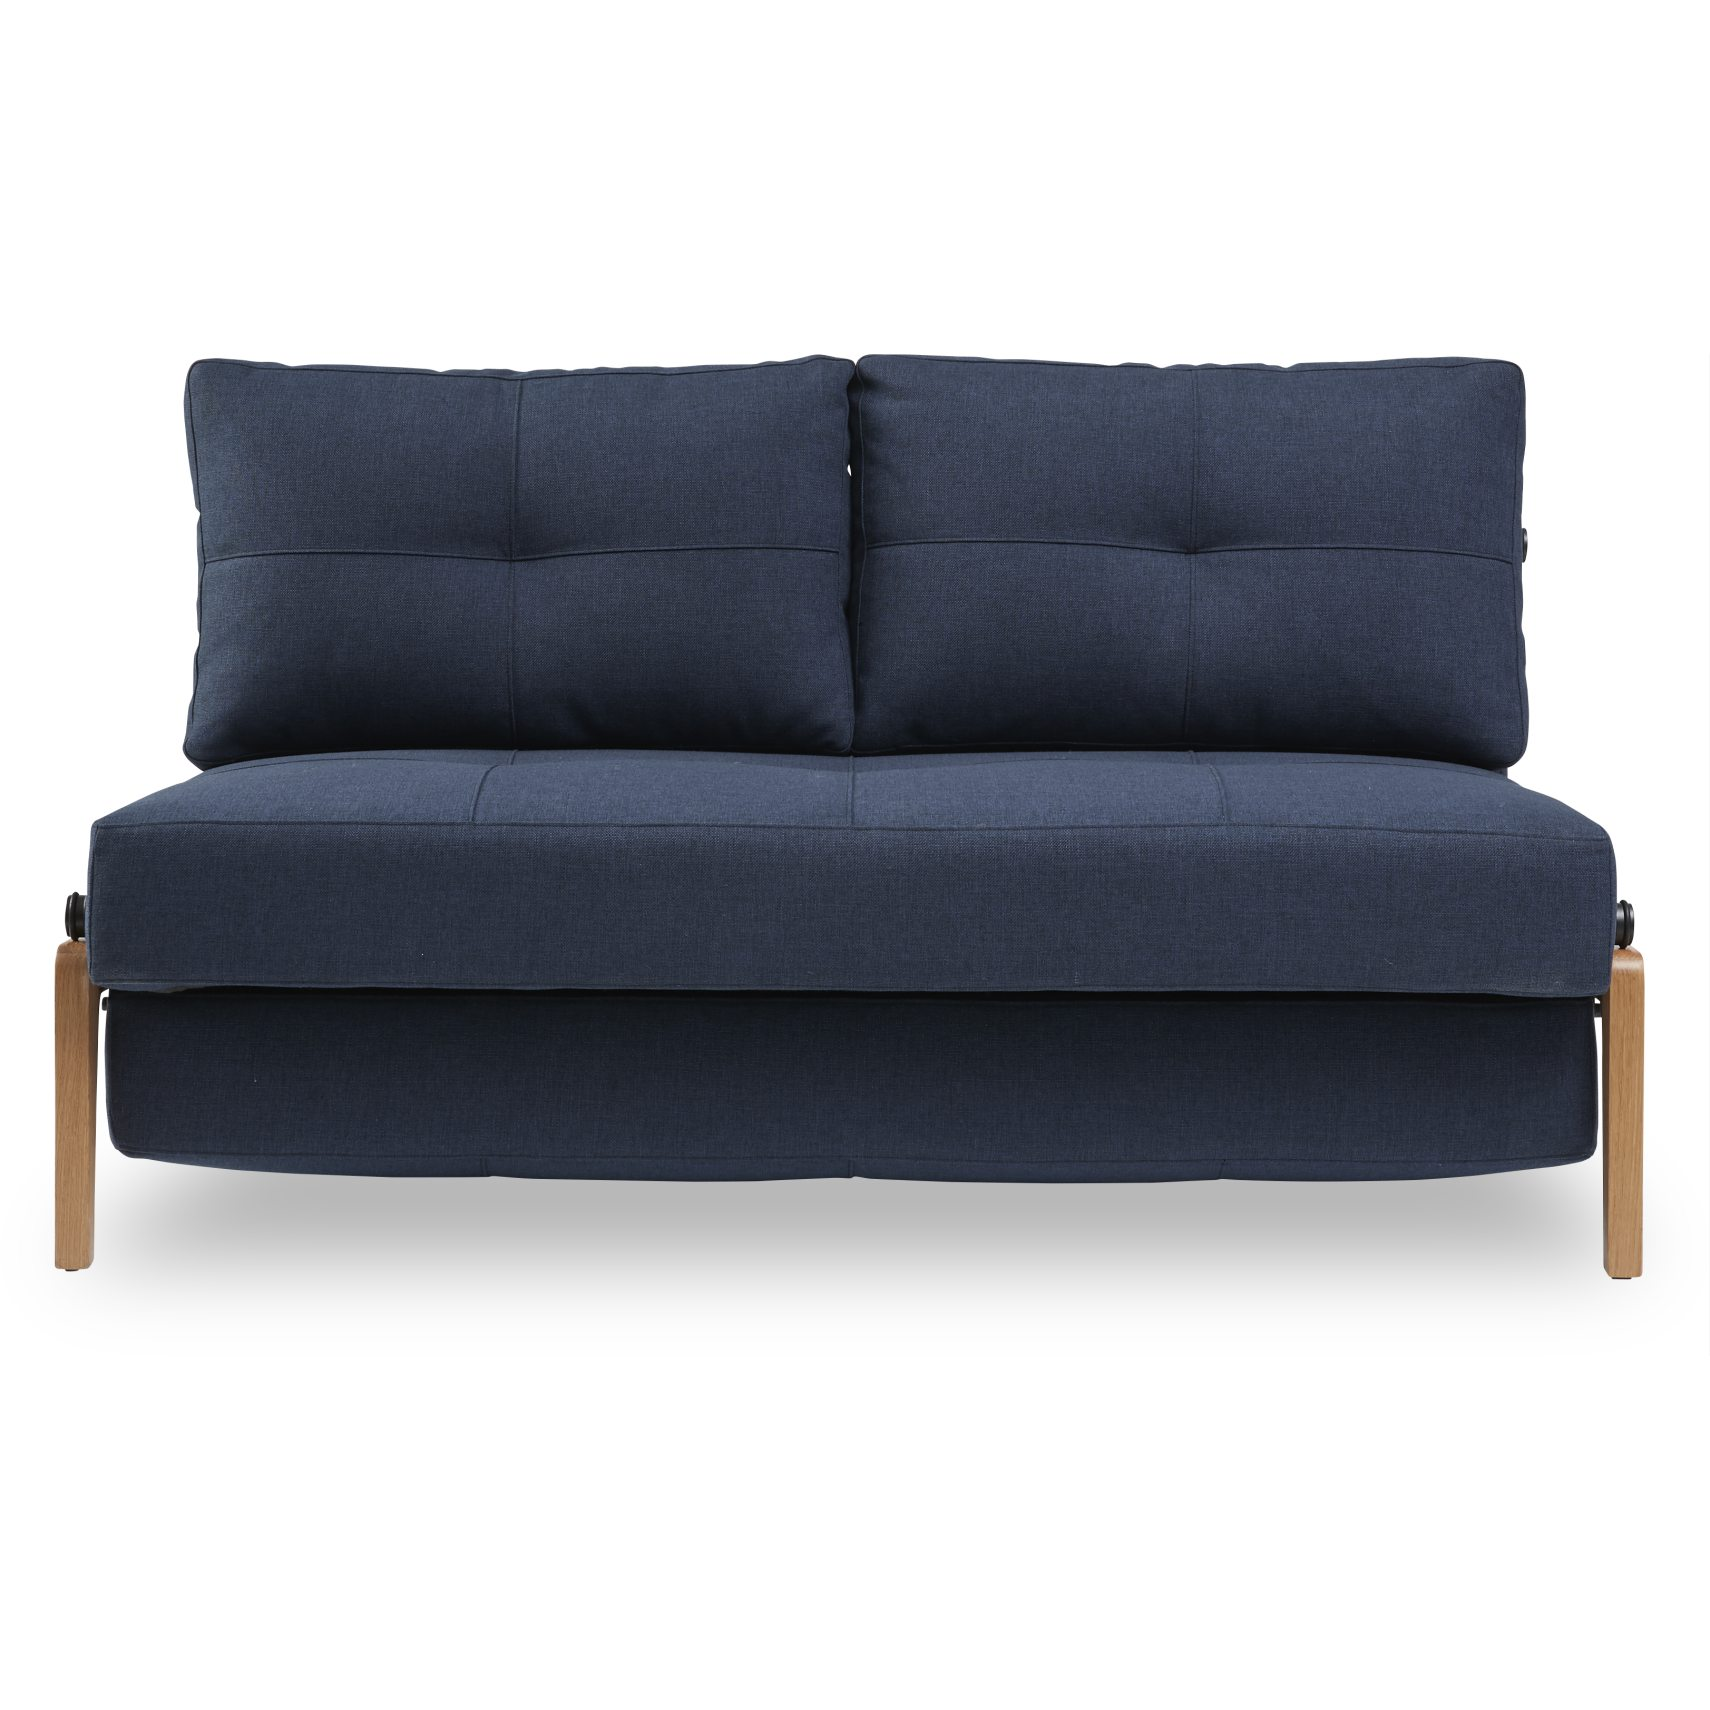 Innovation Living - Cubed Wood Sovesofa - Mixed Dance 528 Blue og ben i massiv lakeret eg